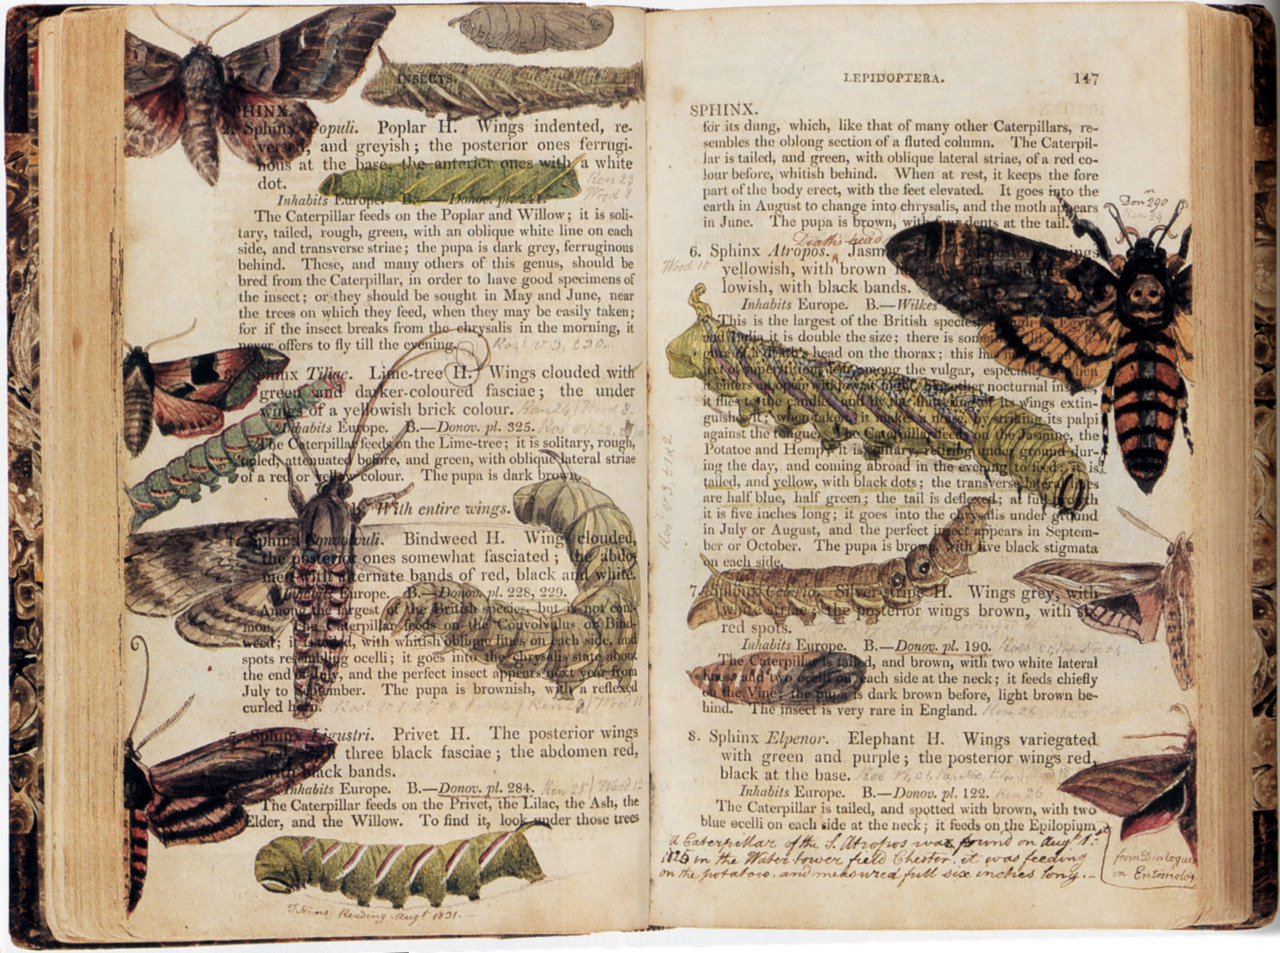 scientificillustration:  A copy of 'Elements of the Natural History of the Animal Kingdom' with watercolour additions by Albin Burt (1784-1842). Sold at Sotheby's in 2002 at a Natural History, Travel, Atlases and Maps auction.